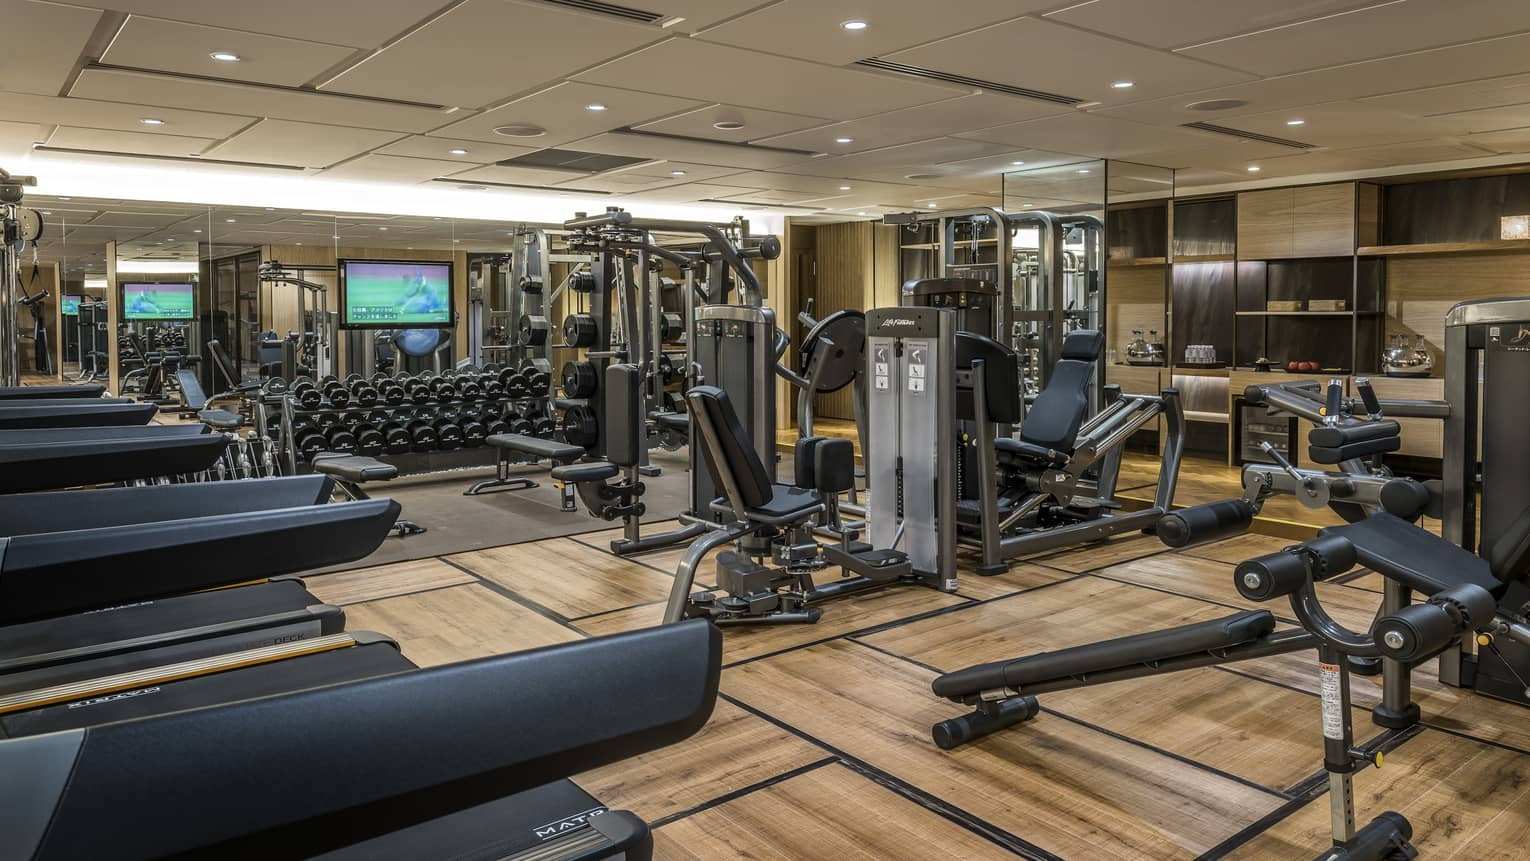 Hotel fitness centre and gym with cardio equipment, weightlifting machines and free weights station